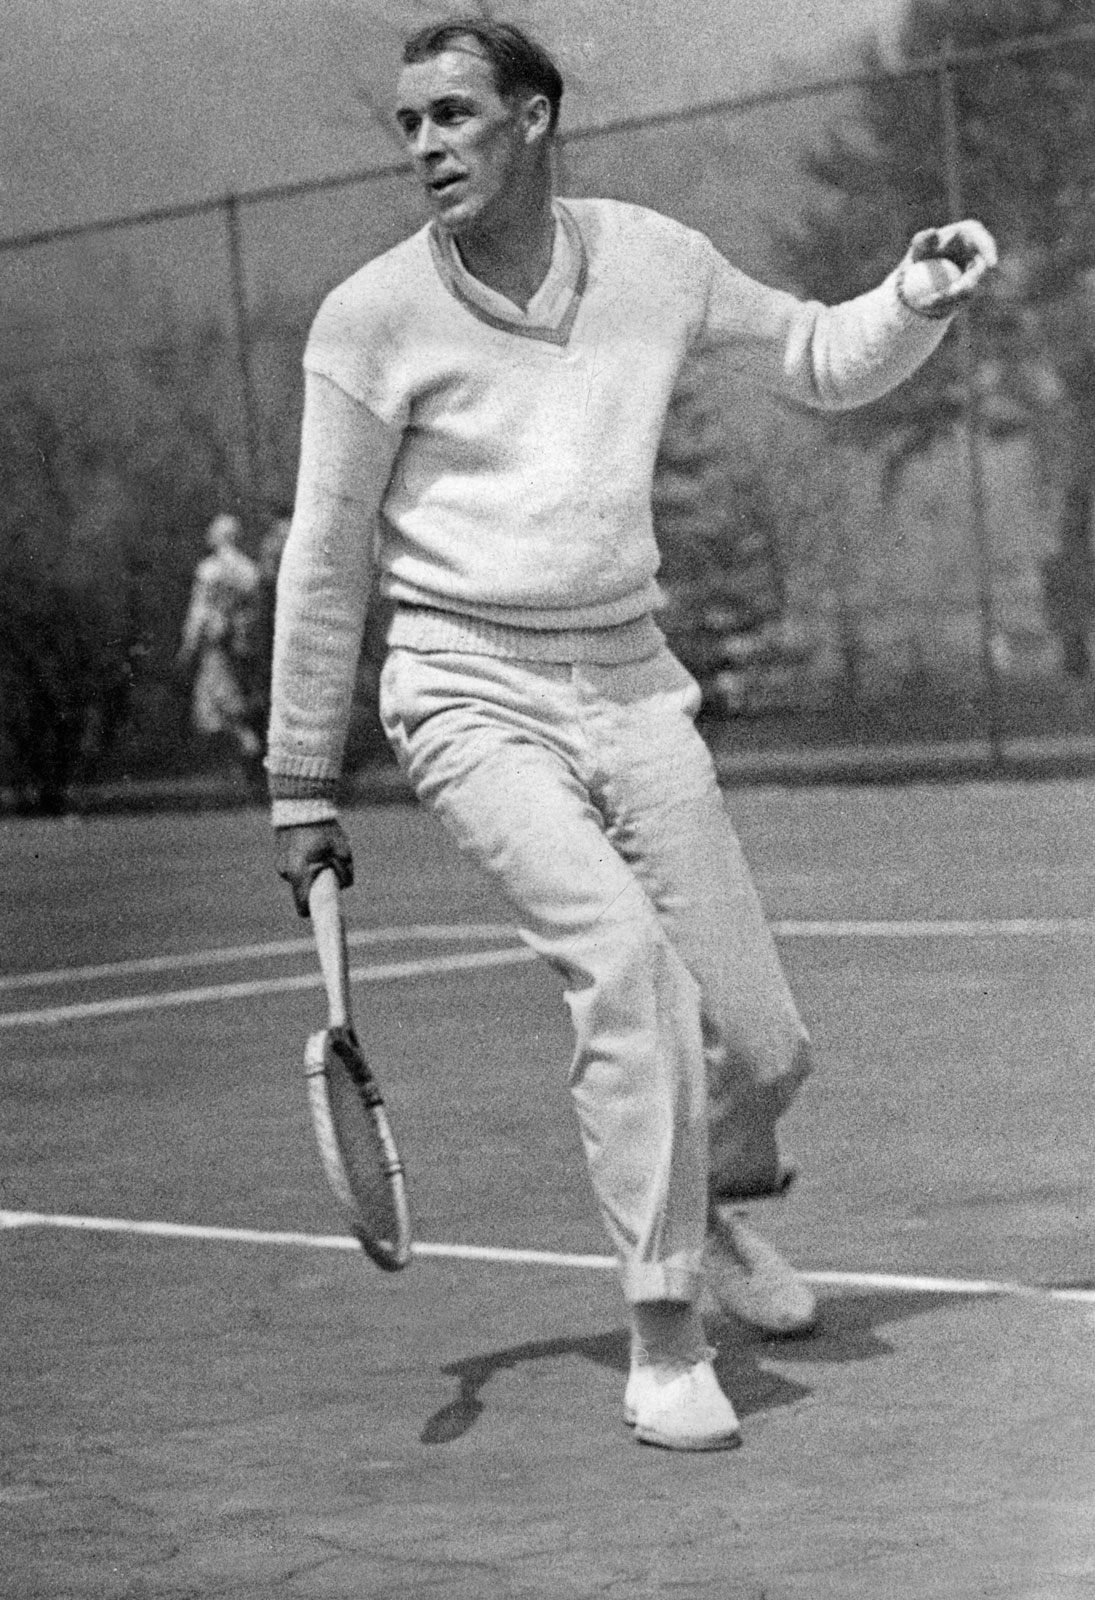 Bill Tilden the Athlete biography facts and quotes